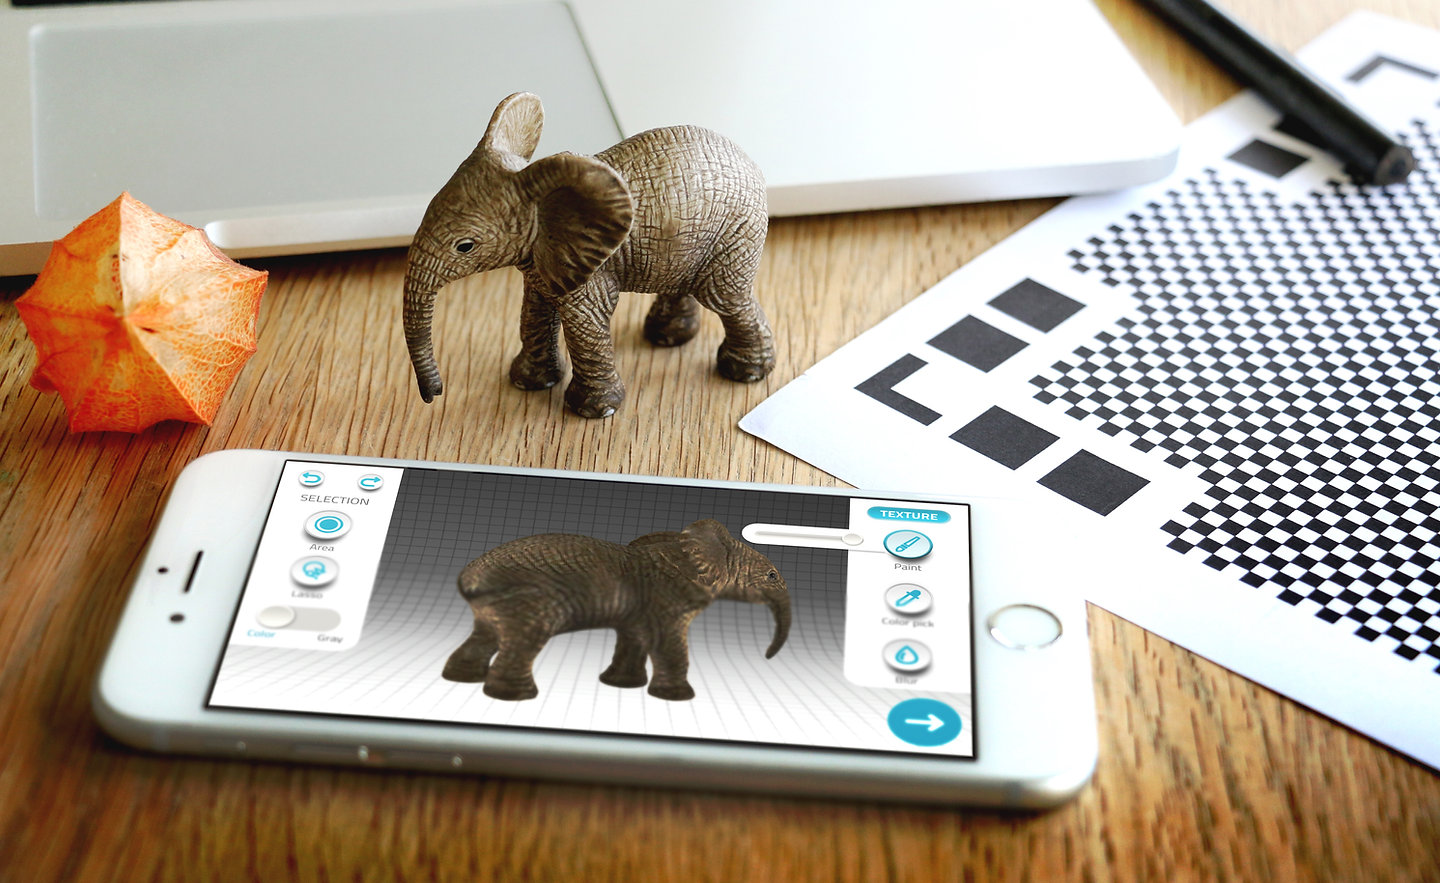 Qlone, the all in one tool for 3D Scanning